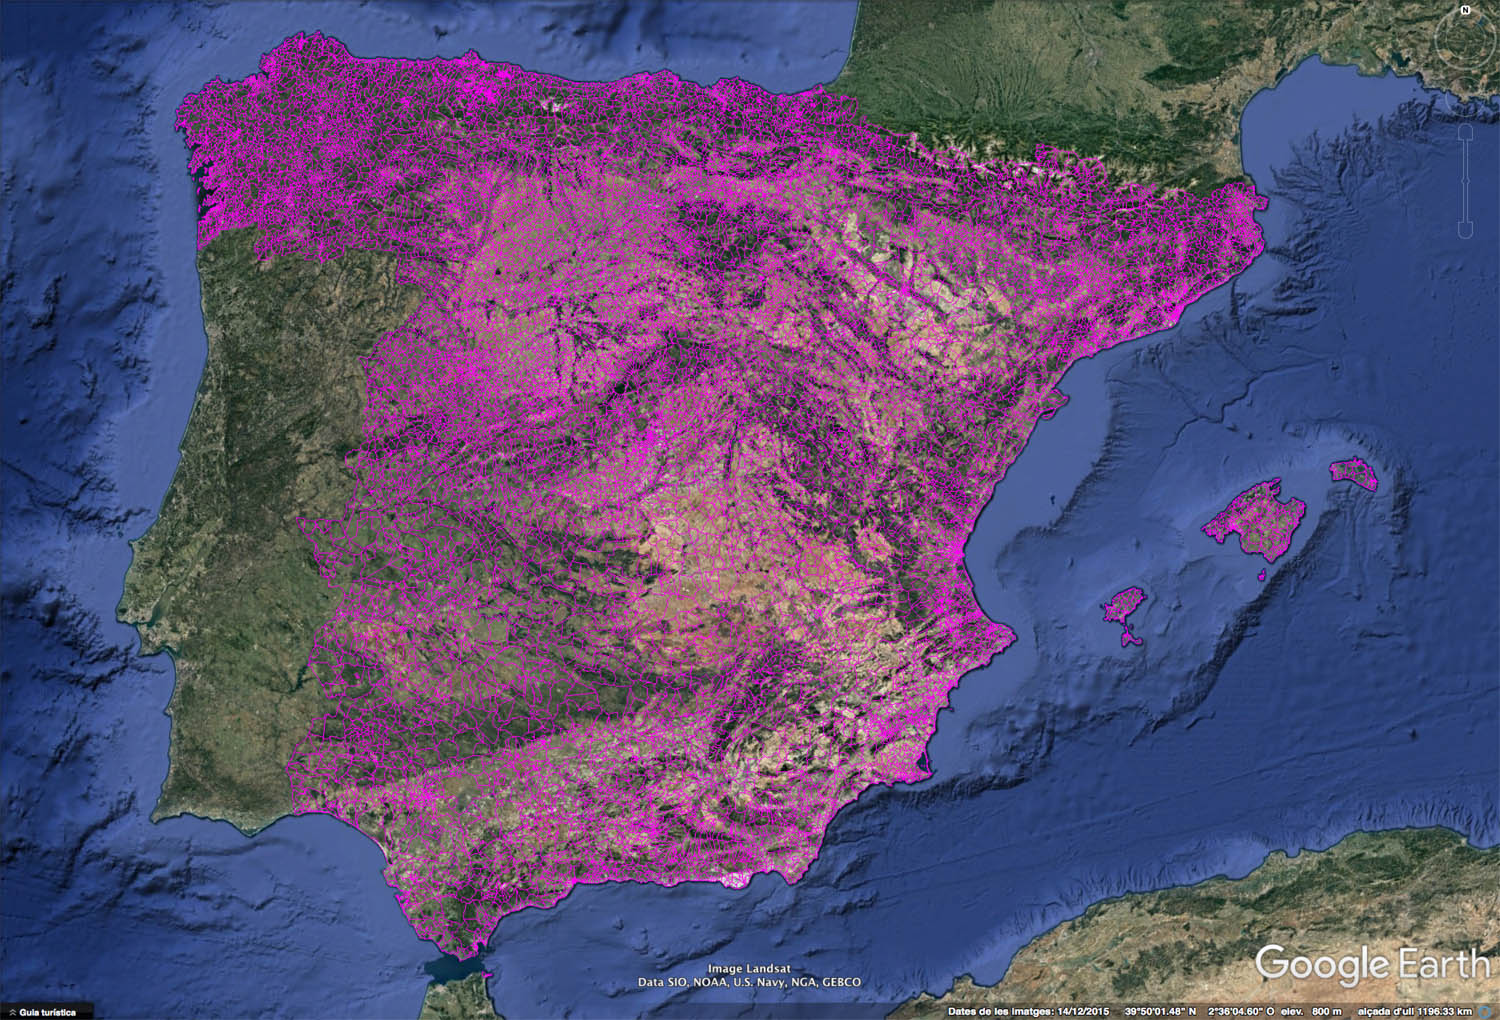 Google Earth Map Of Spain.Map Of Spain With Postal Codes Areas